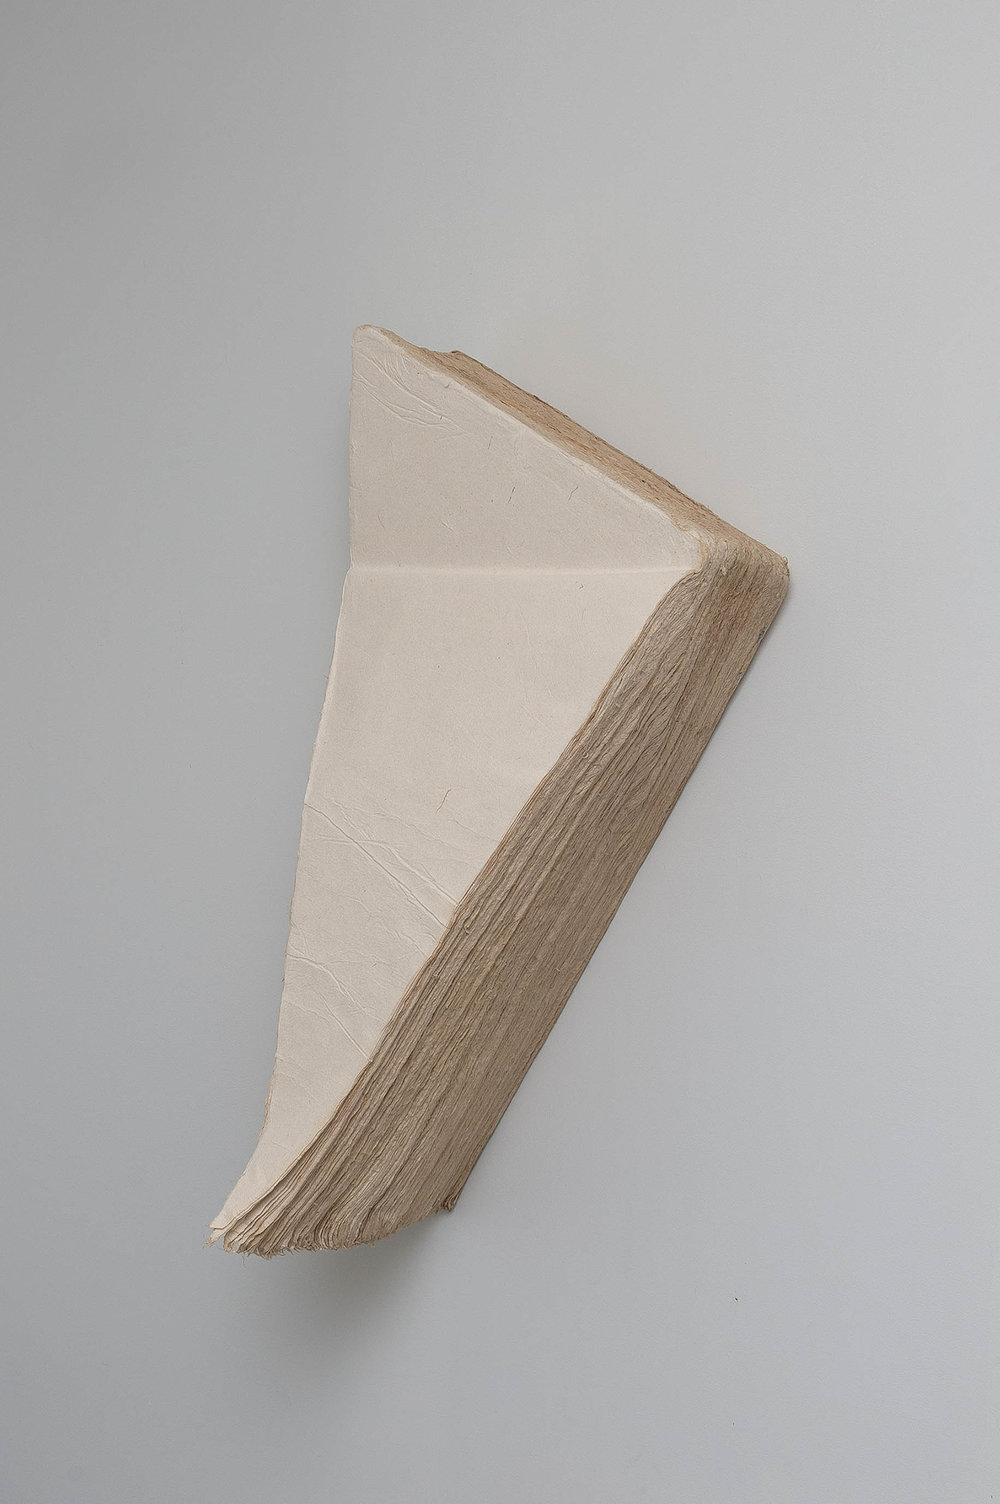 Paper No.1 BE, 1983